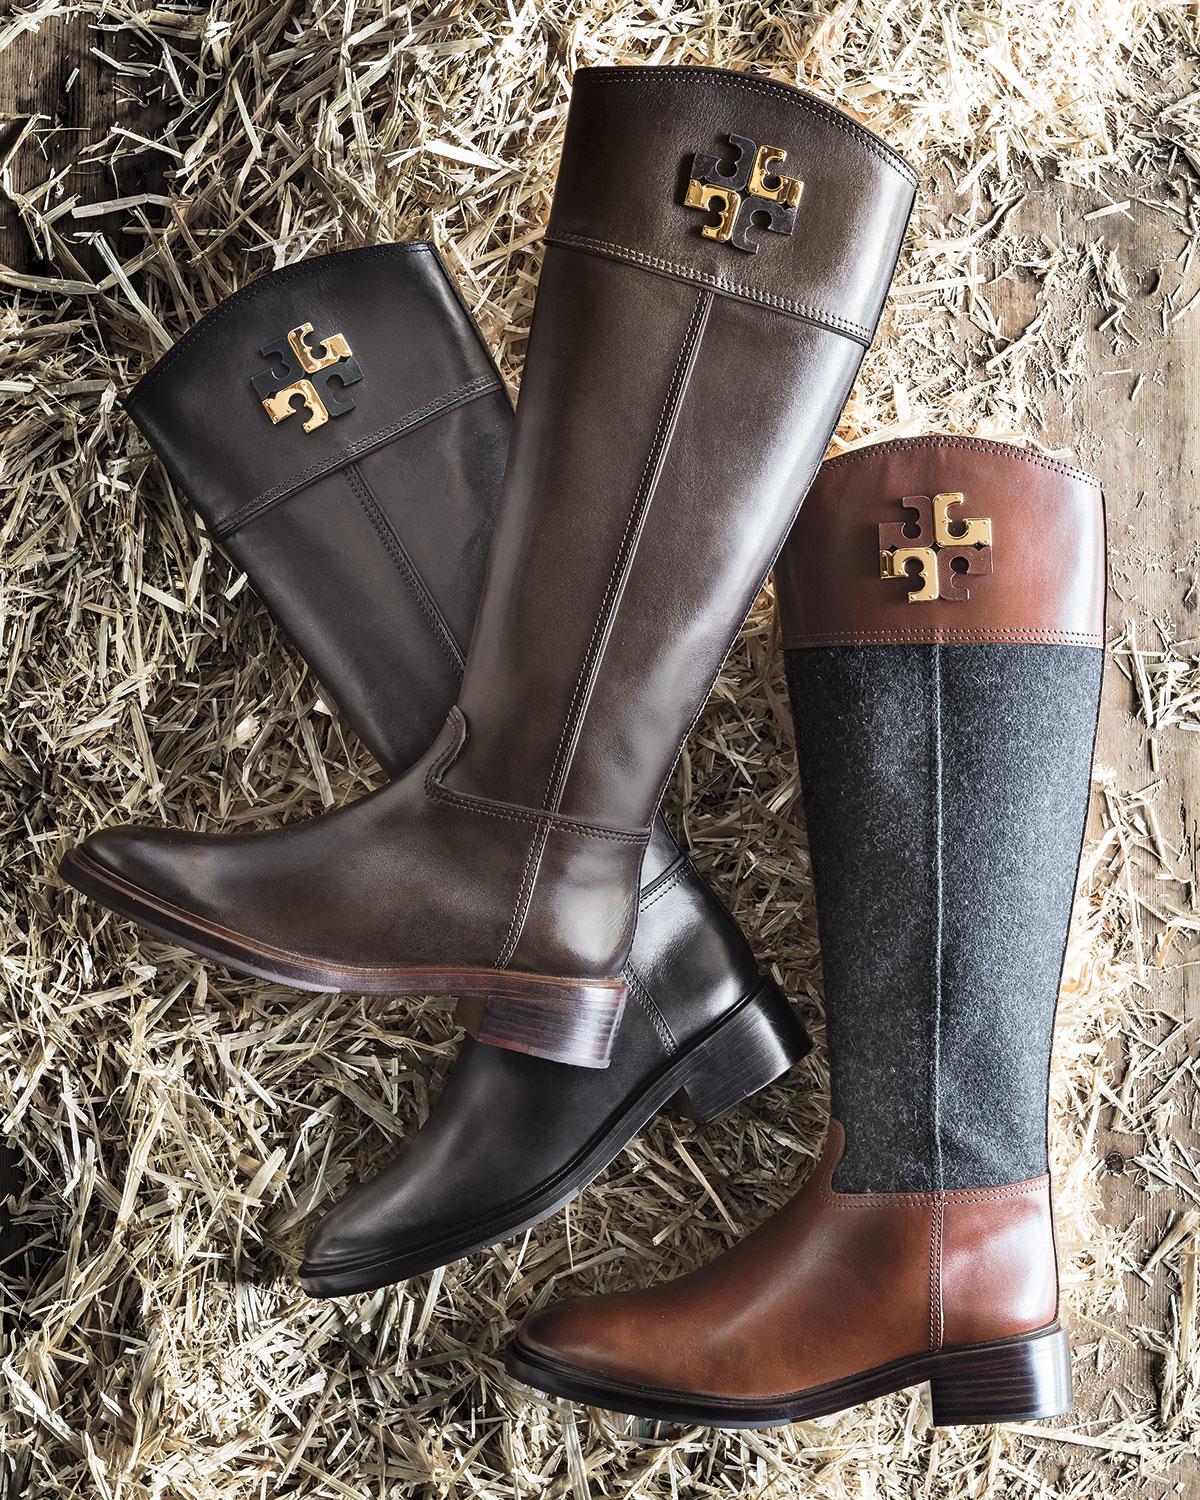 044fa05fa898a Lyst - Tory Burch Lowell Logo Riding Boot in Black